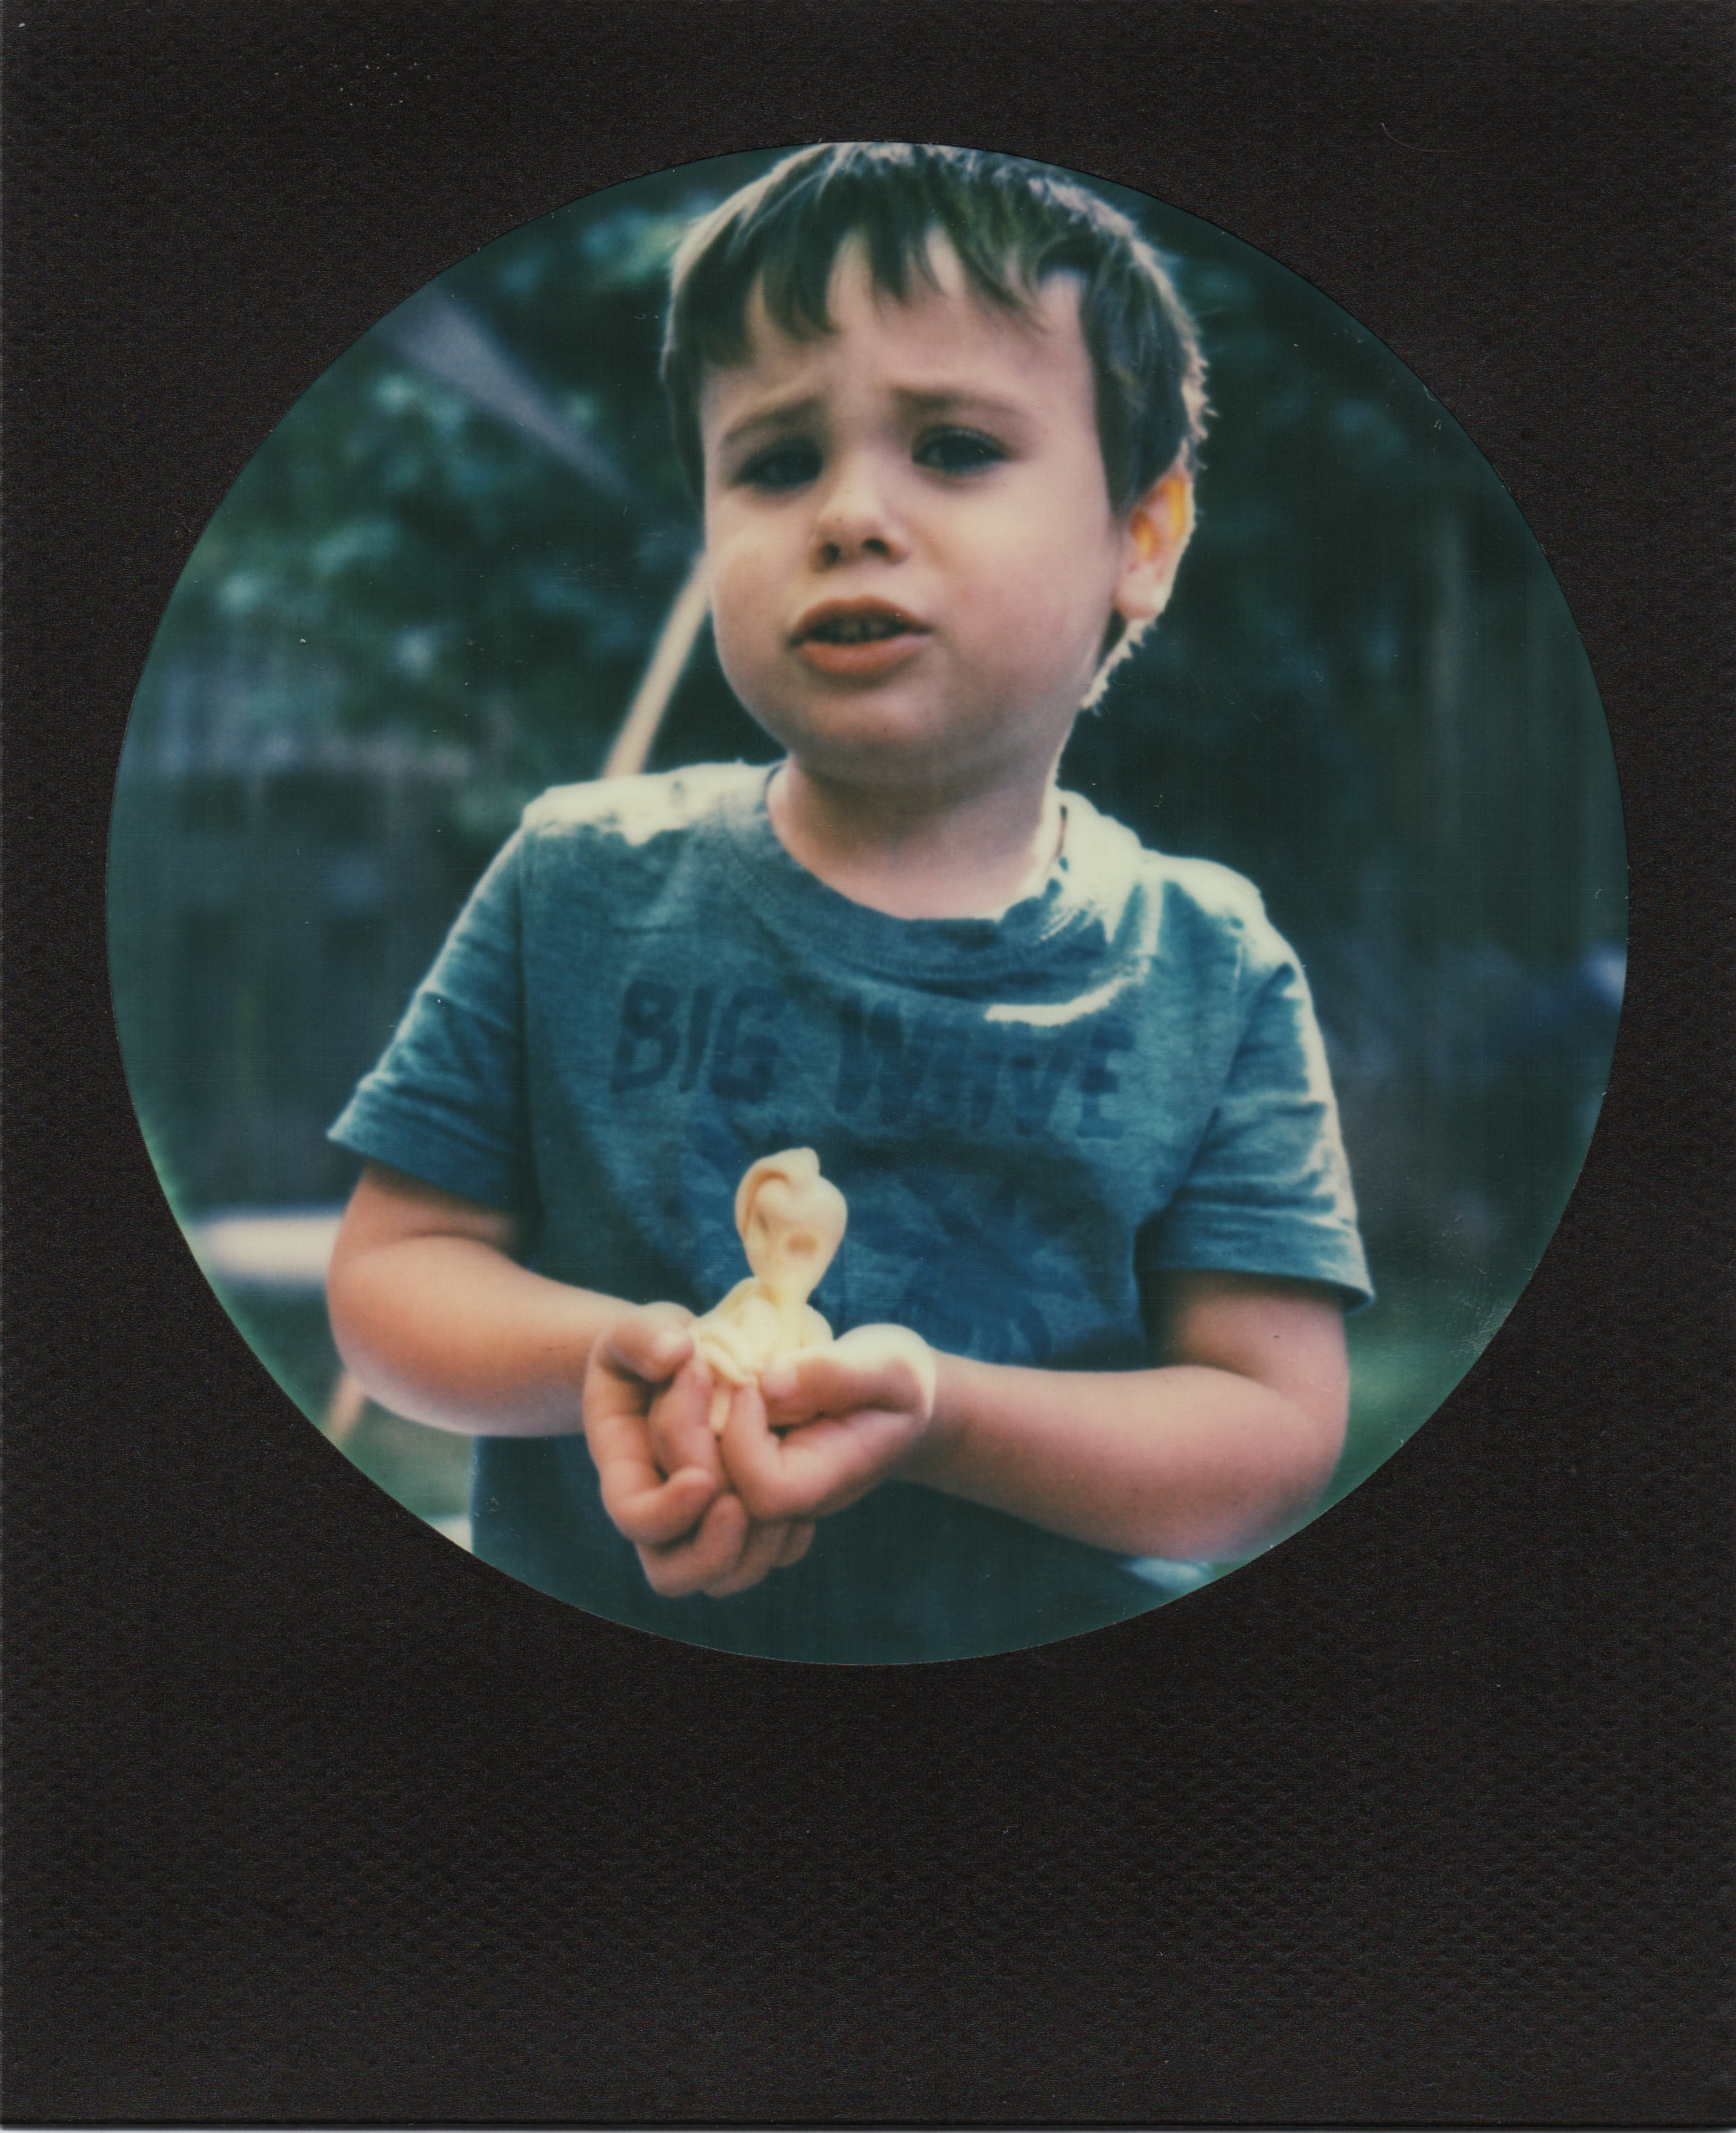 Look A Little Alien | Polaroid sx70 | Impossible Round Black Frame | Karin Klaus